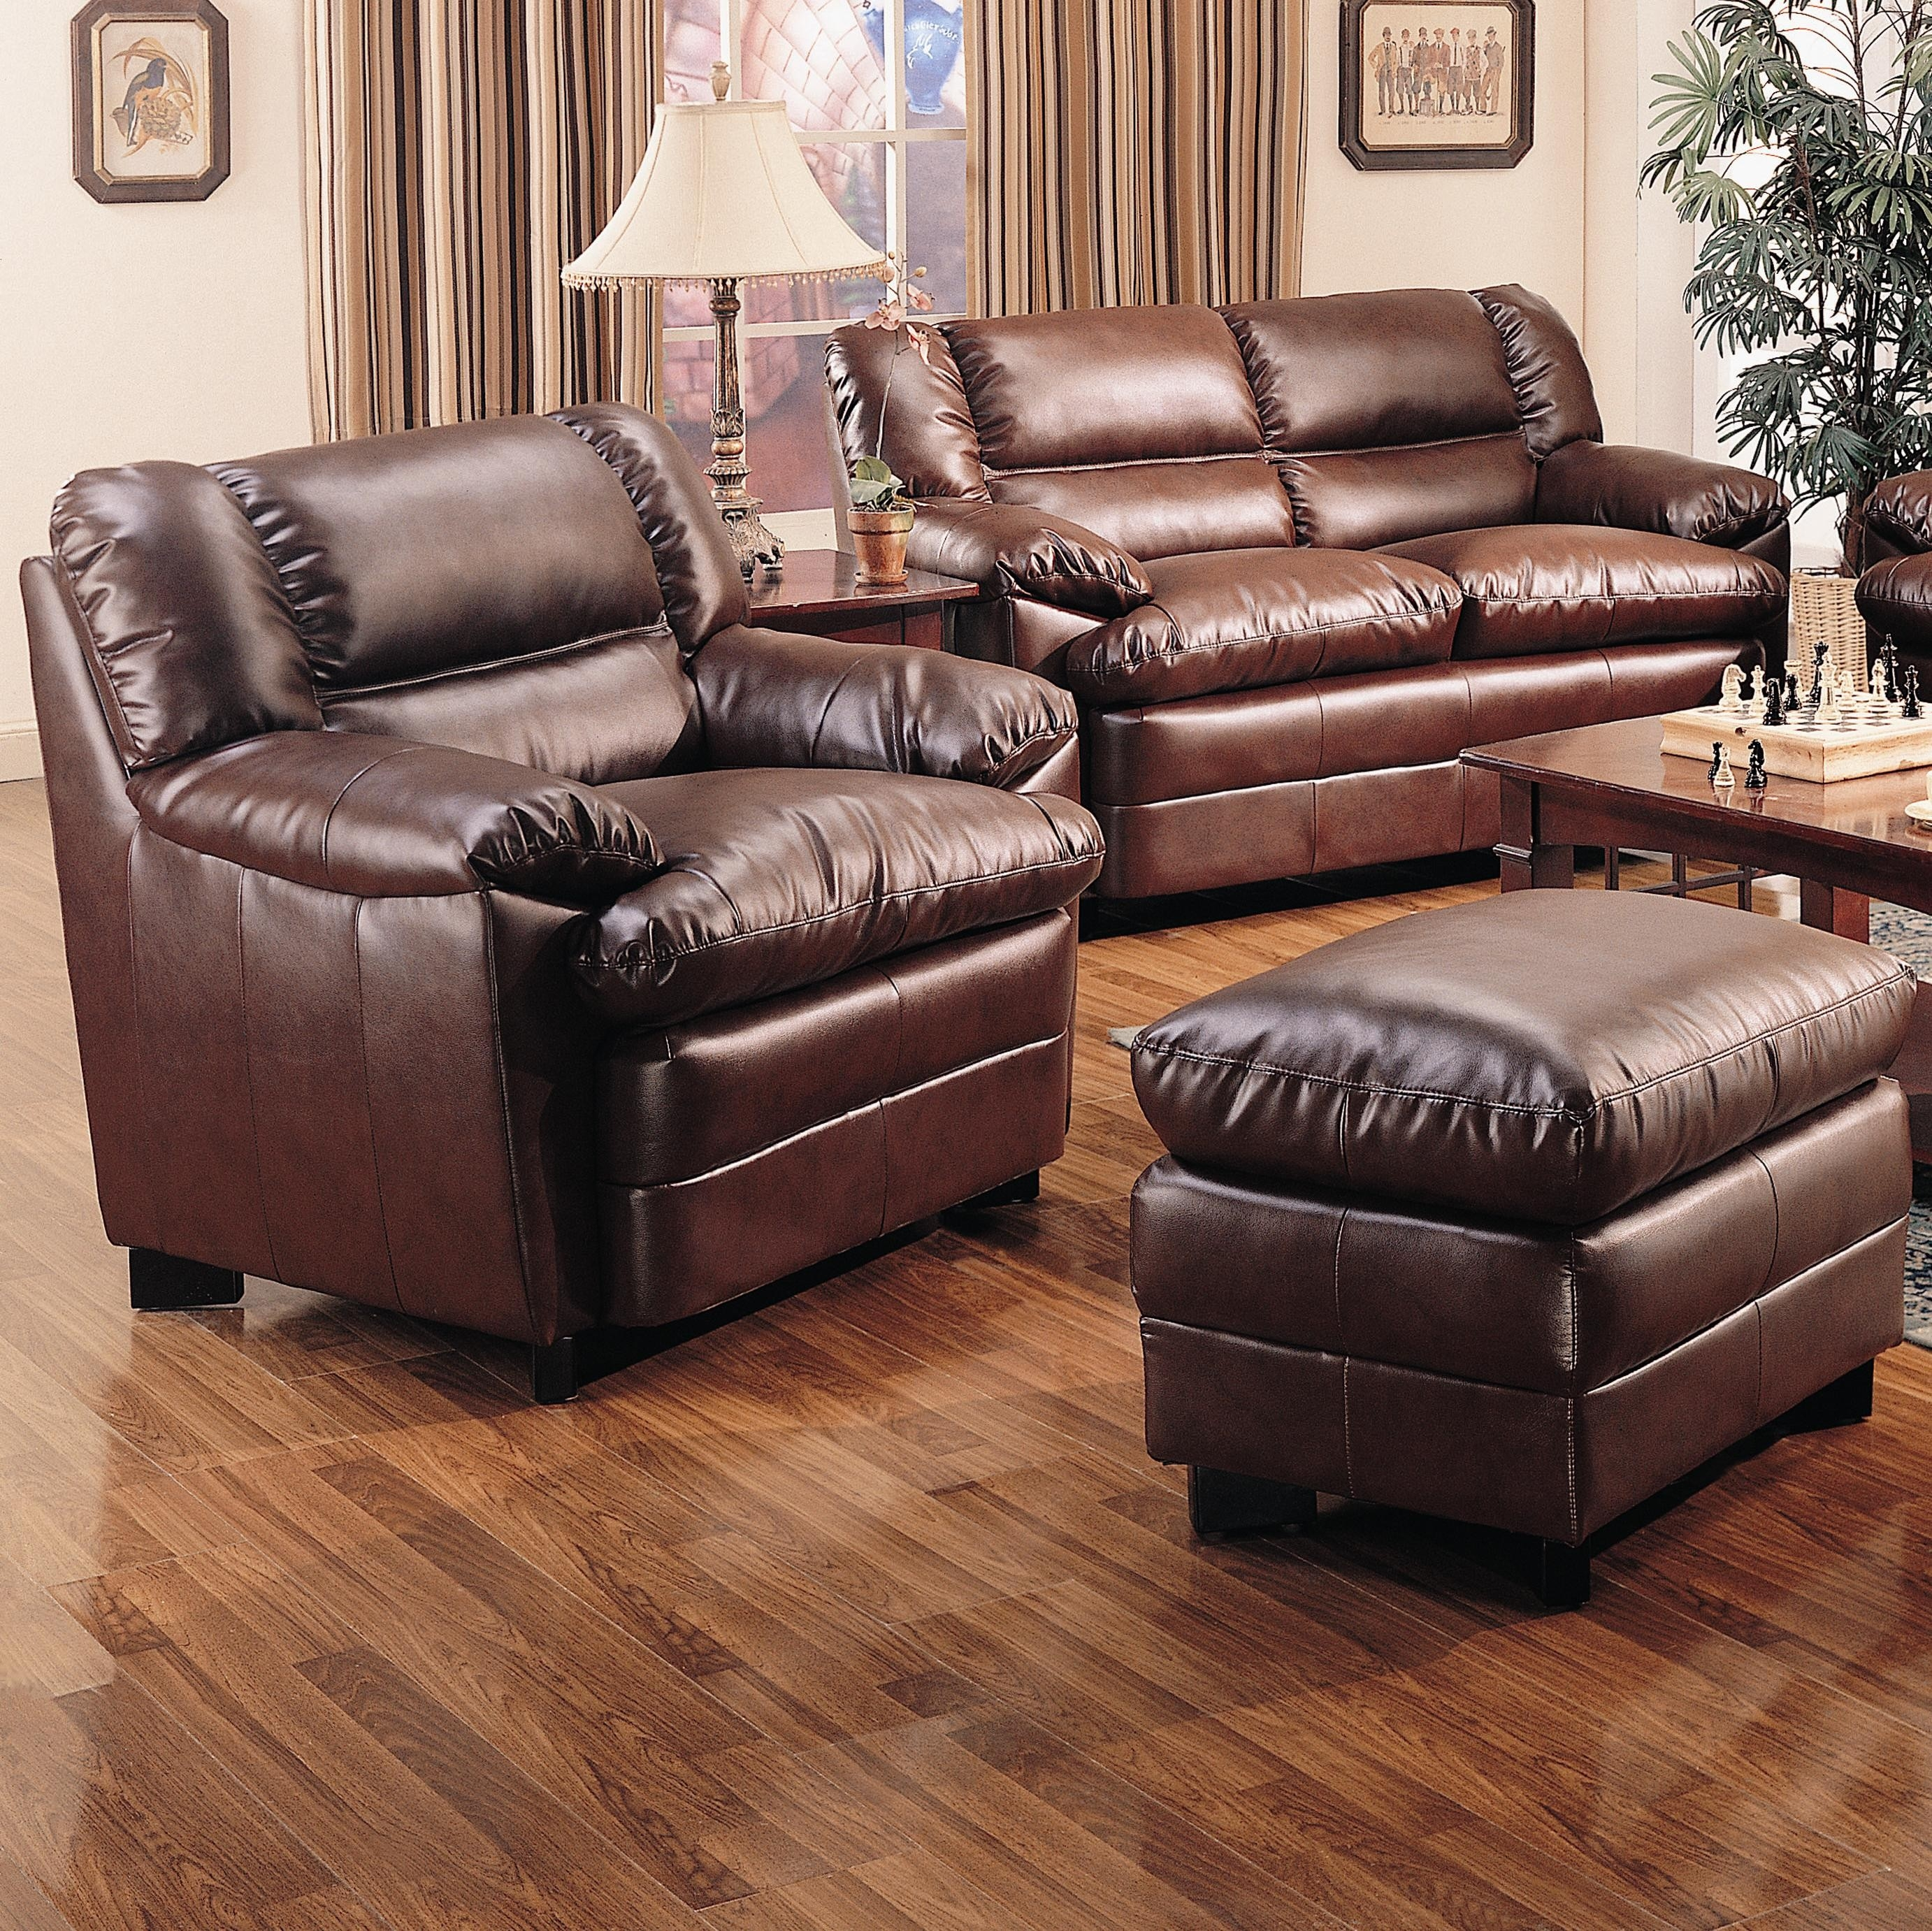 Harper Overstuffed Leather Chair With Ottoman Lowest Price Sofa With Overstuffed Sofas And Chairs (Image 7 of 15)